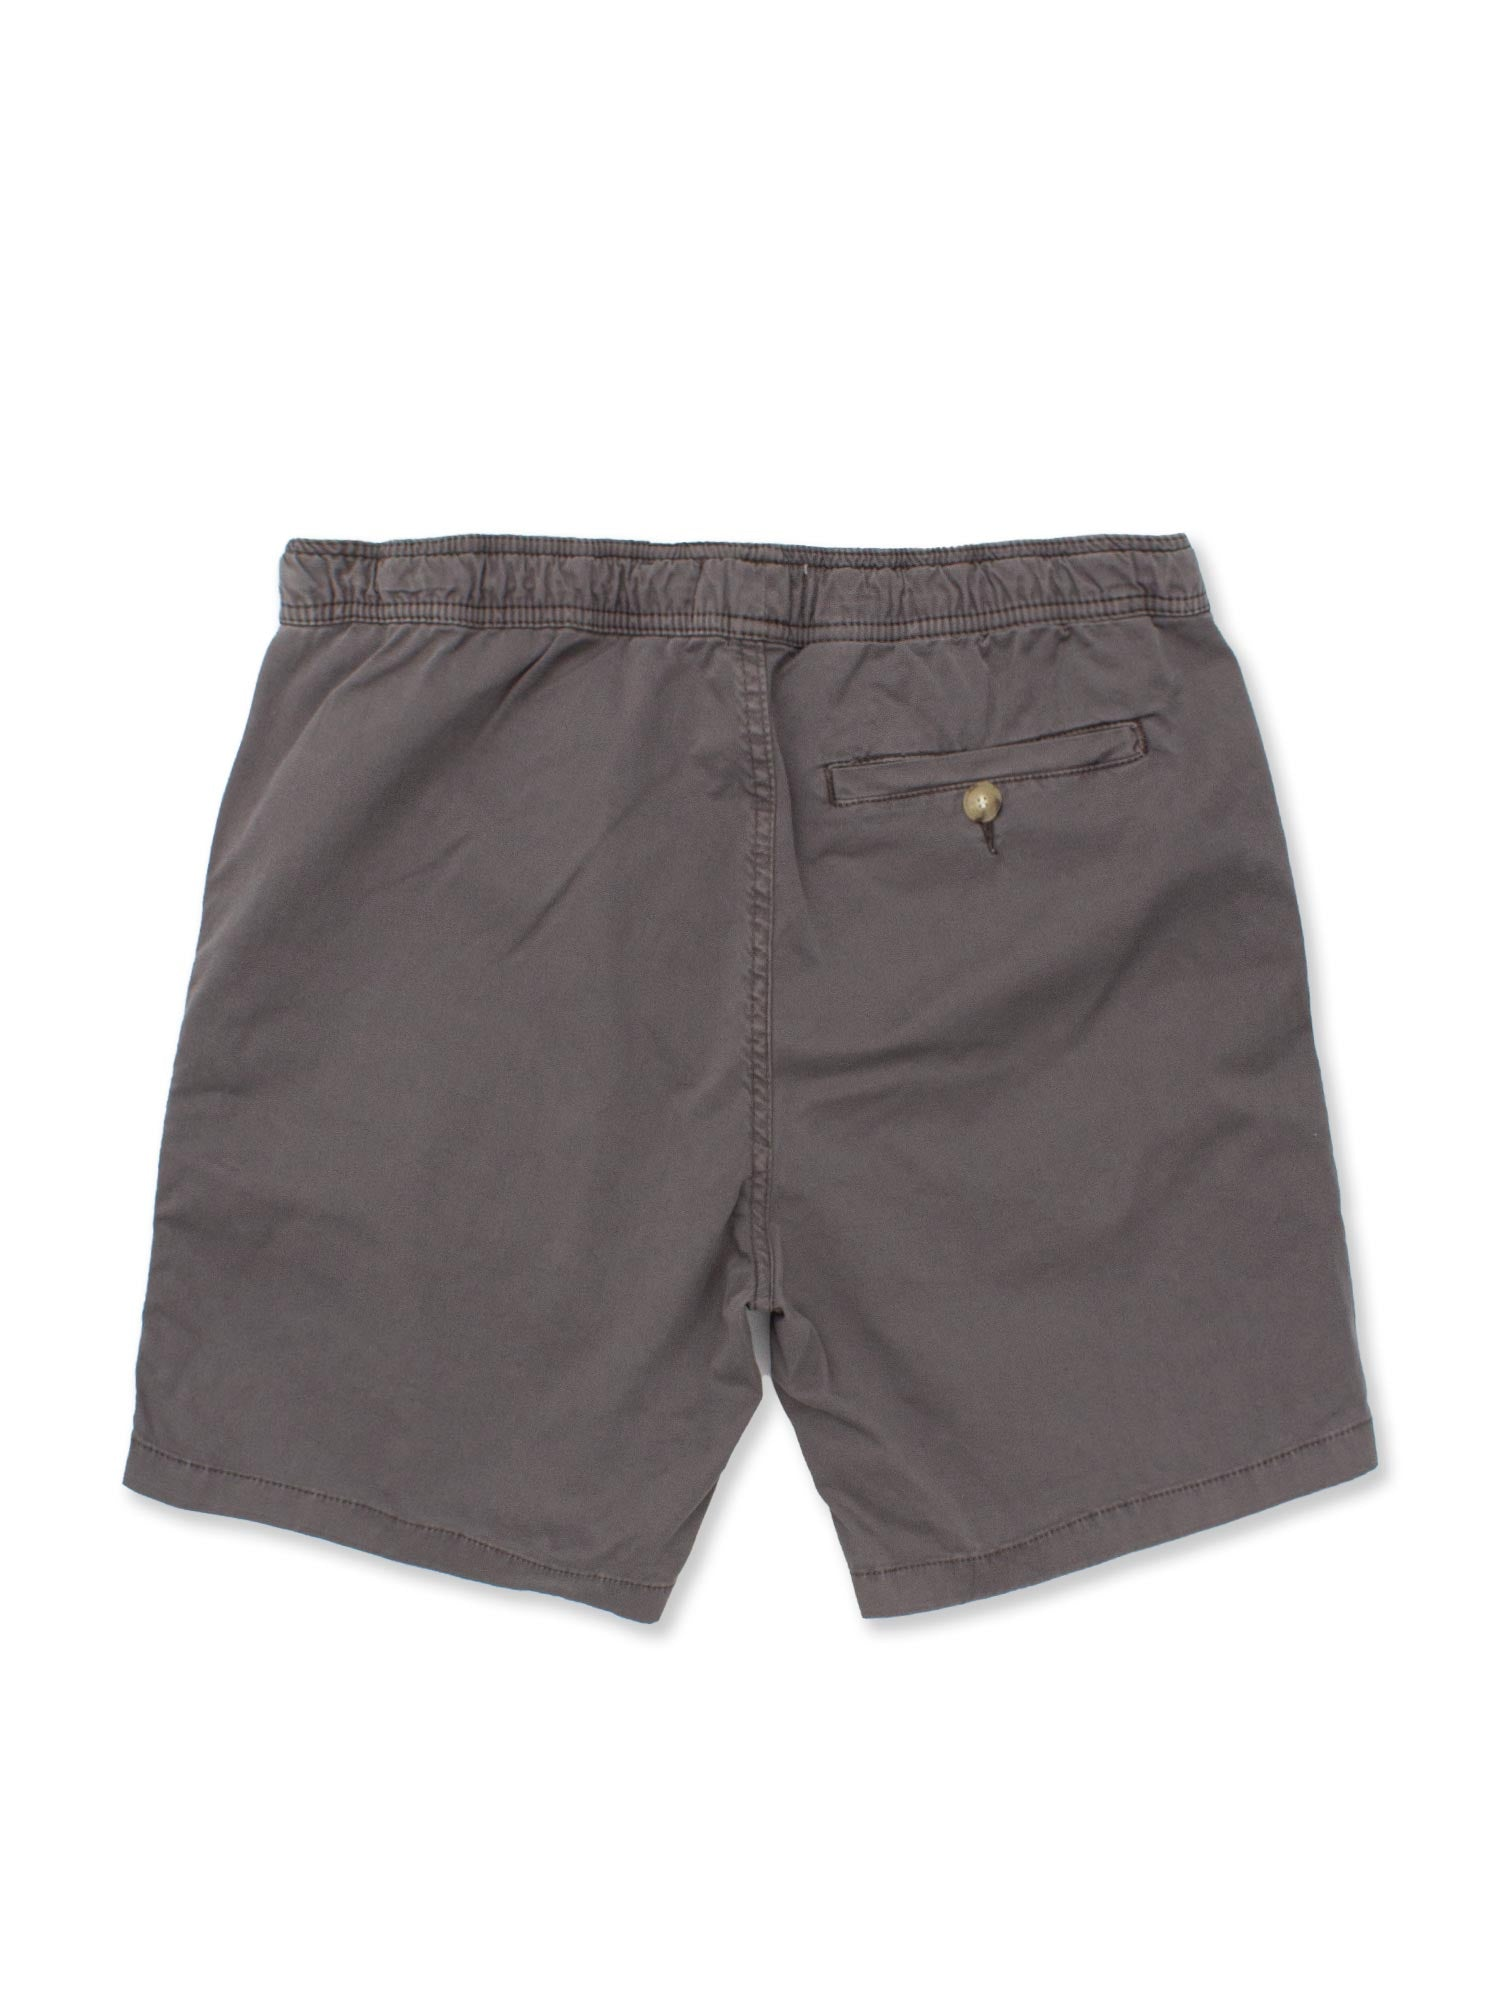 CAMP SHORT GREY